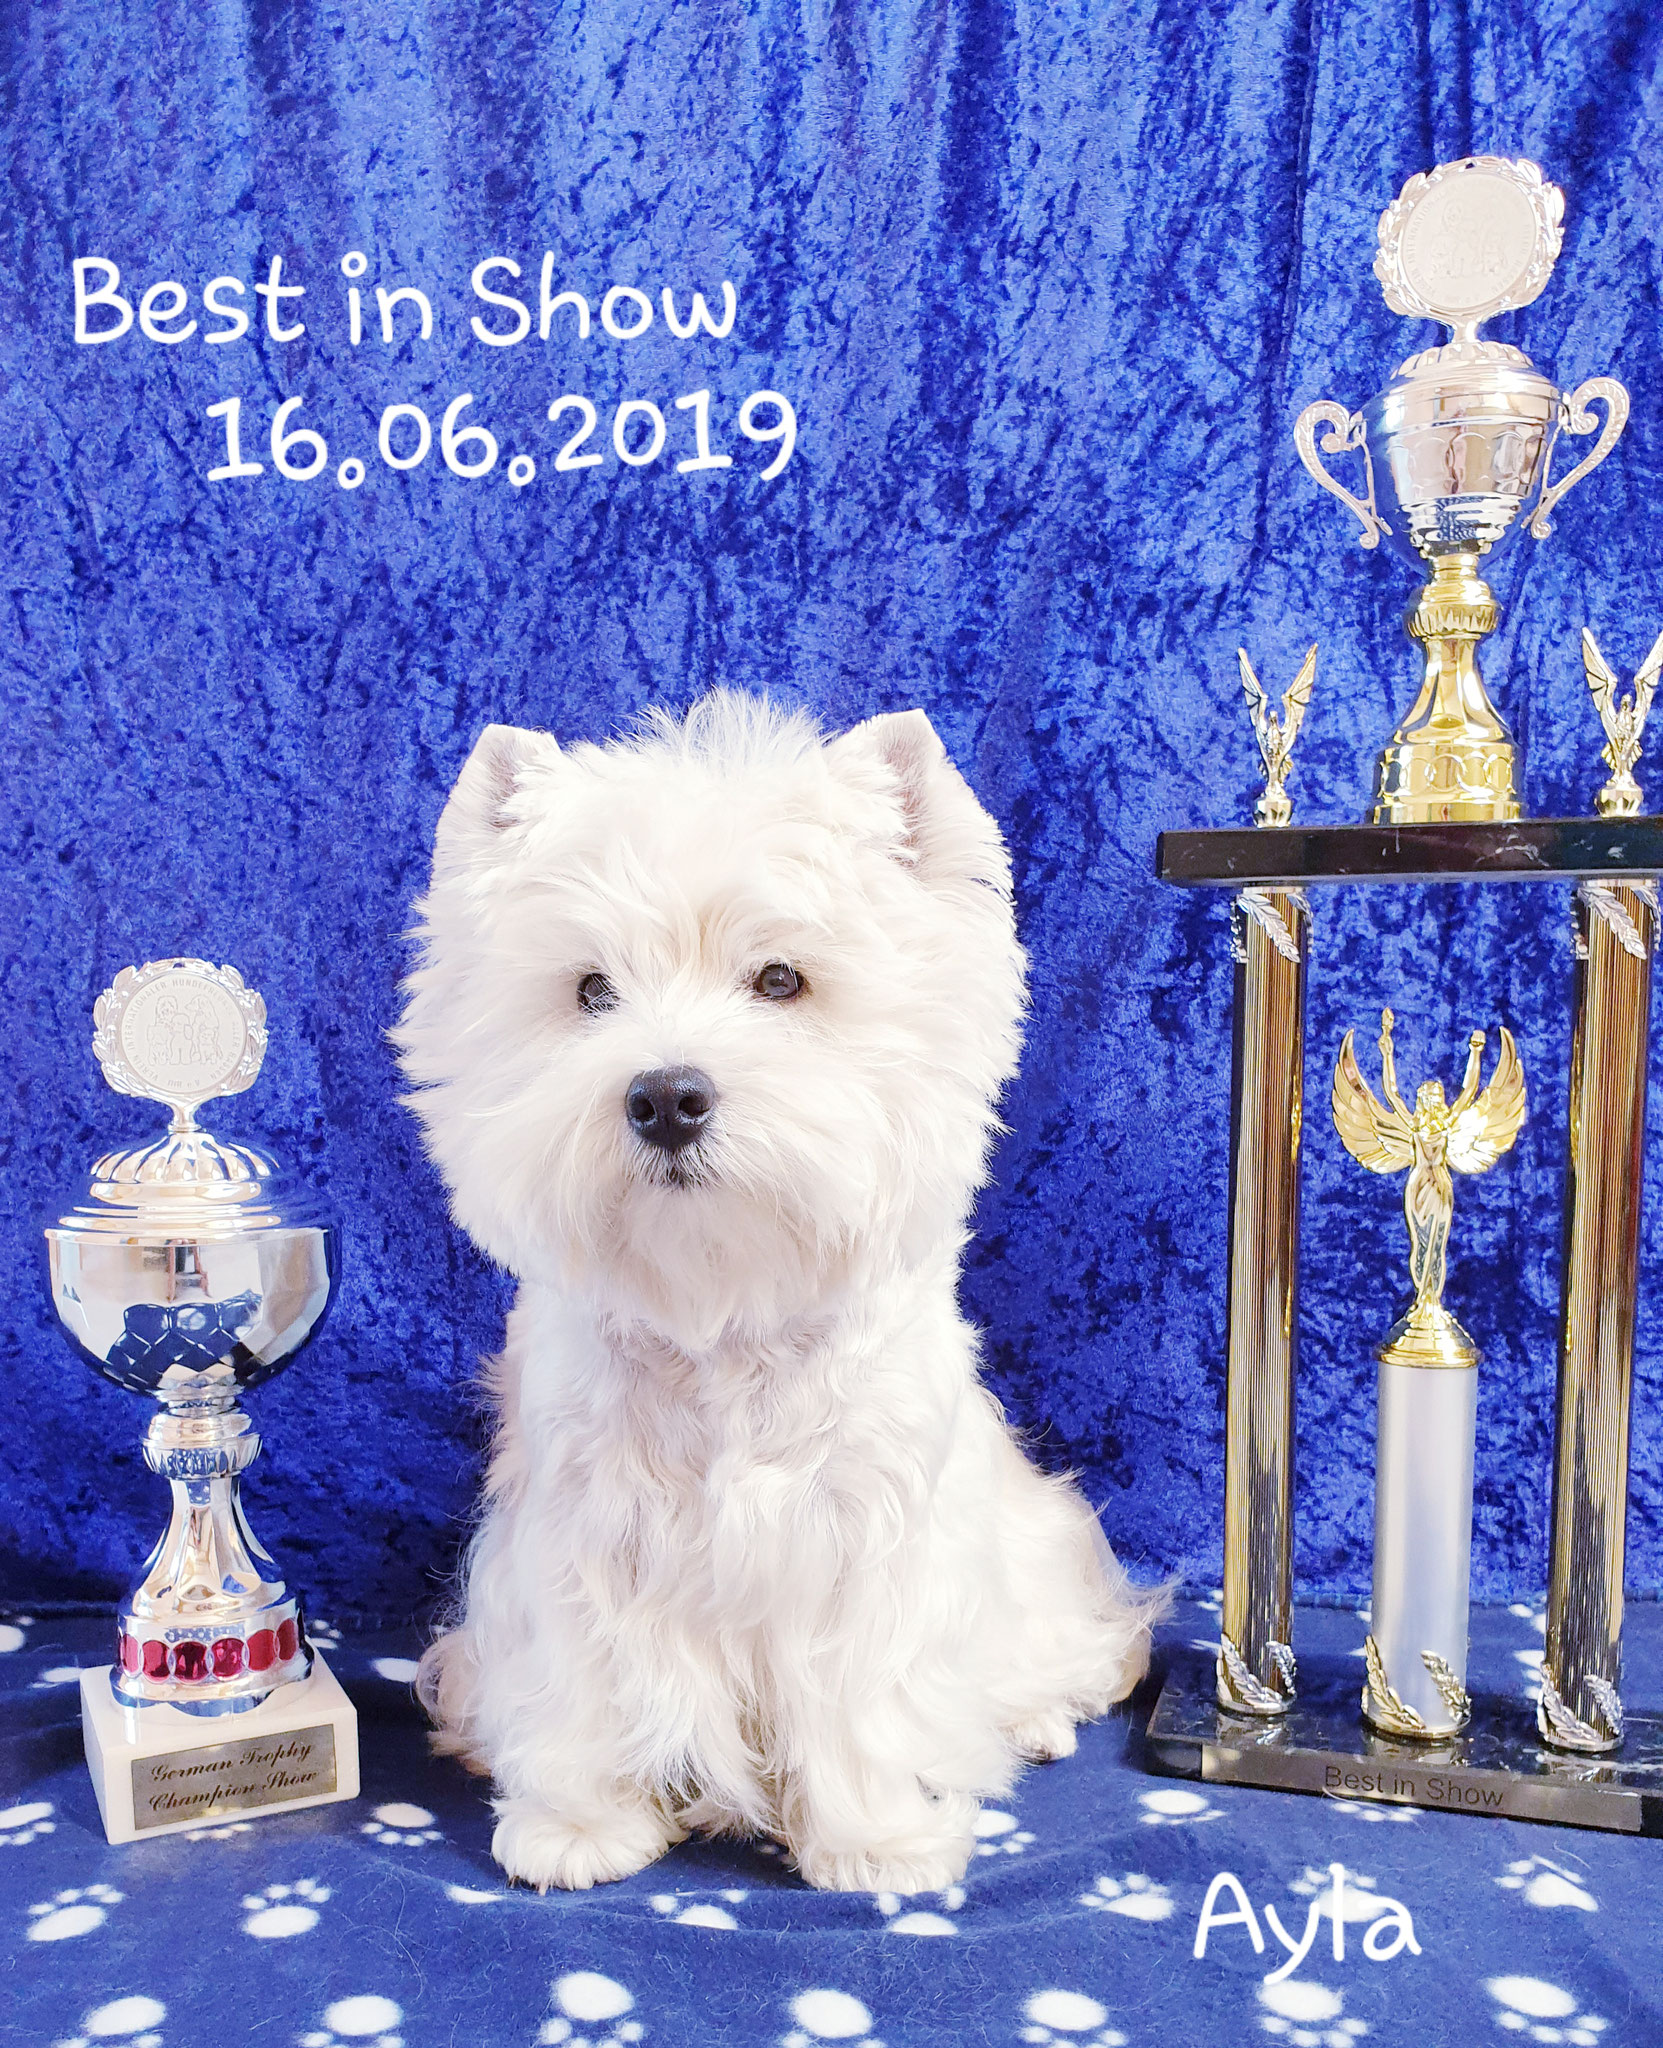 """Ayla """"Best in Show"""" am 16.06.2019"""